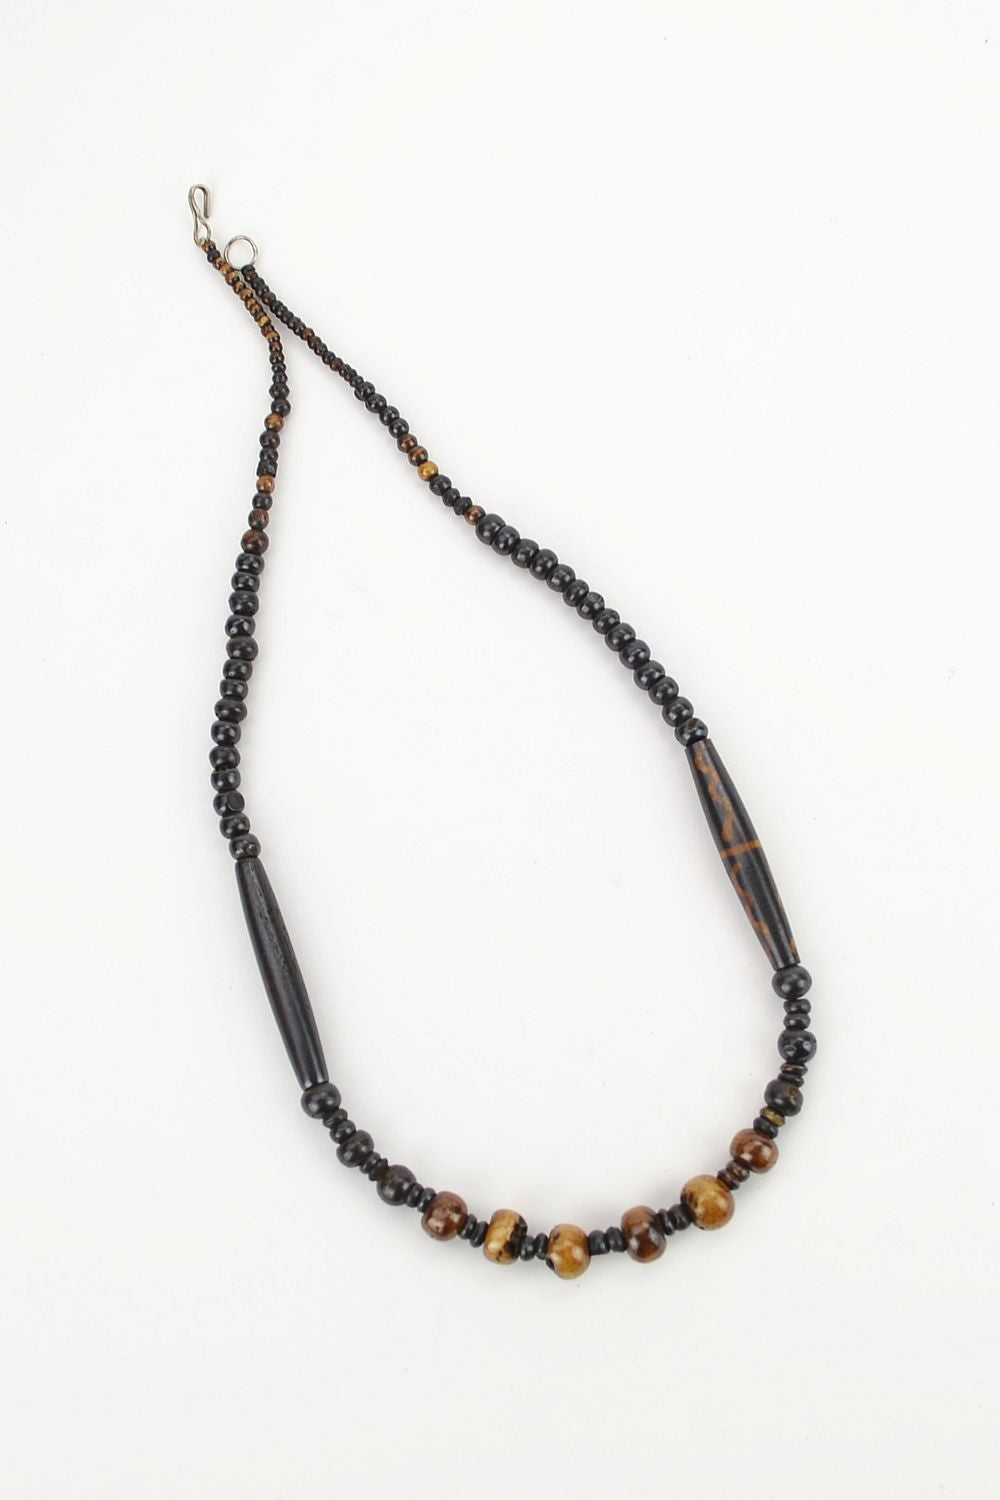 Small Stone Necklace - at I Love Tunics @ www.ilovetunics.com = Number One! Tunics Destination